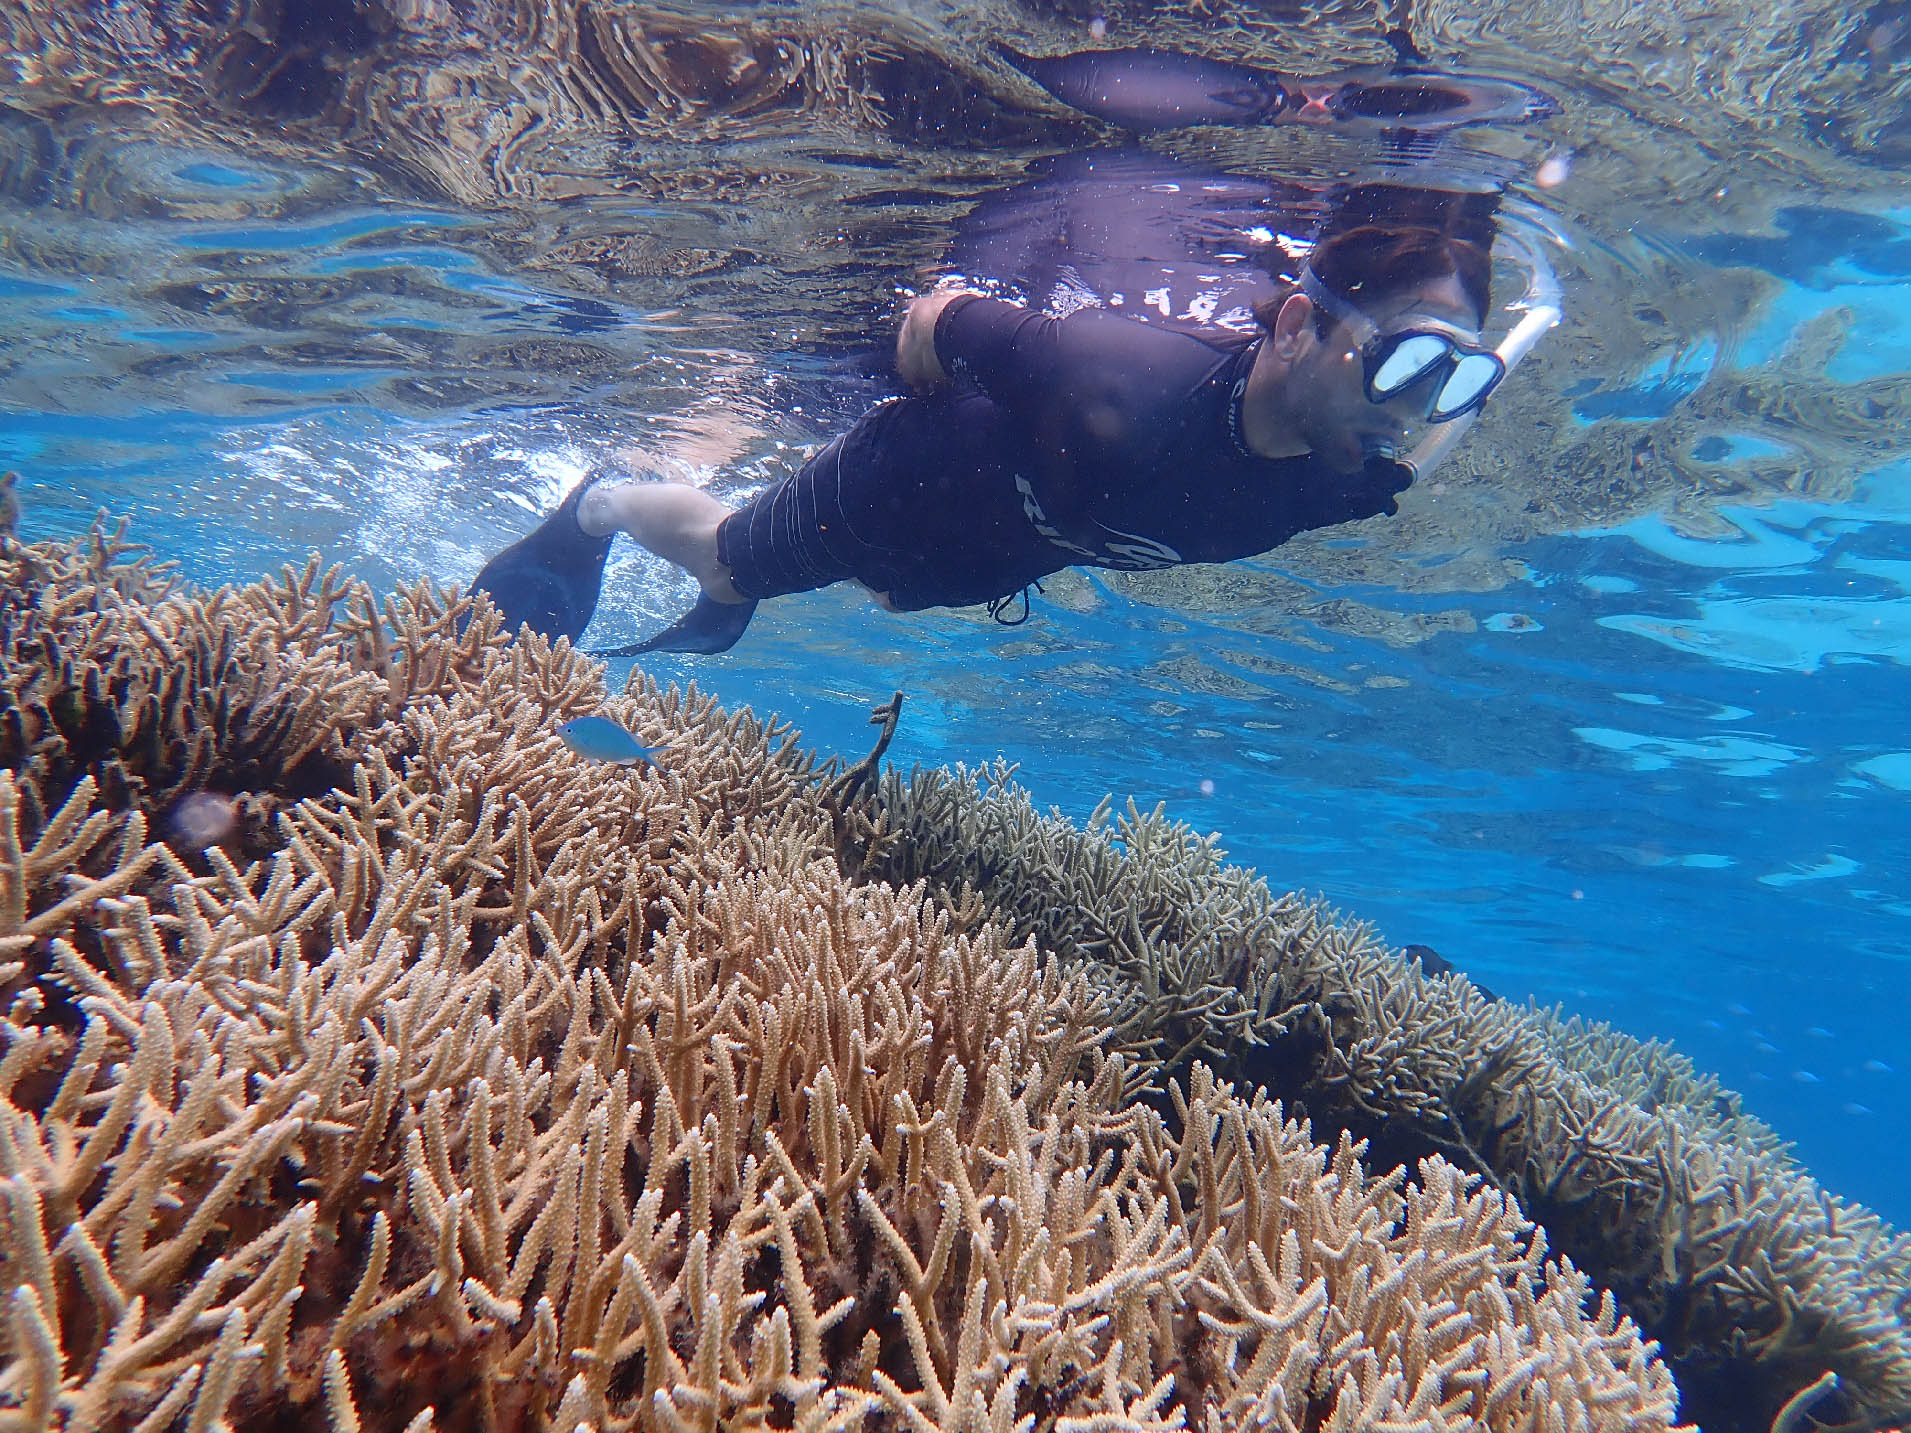 Snorkeler over hard coral reef